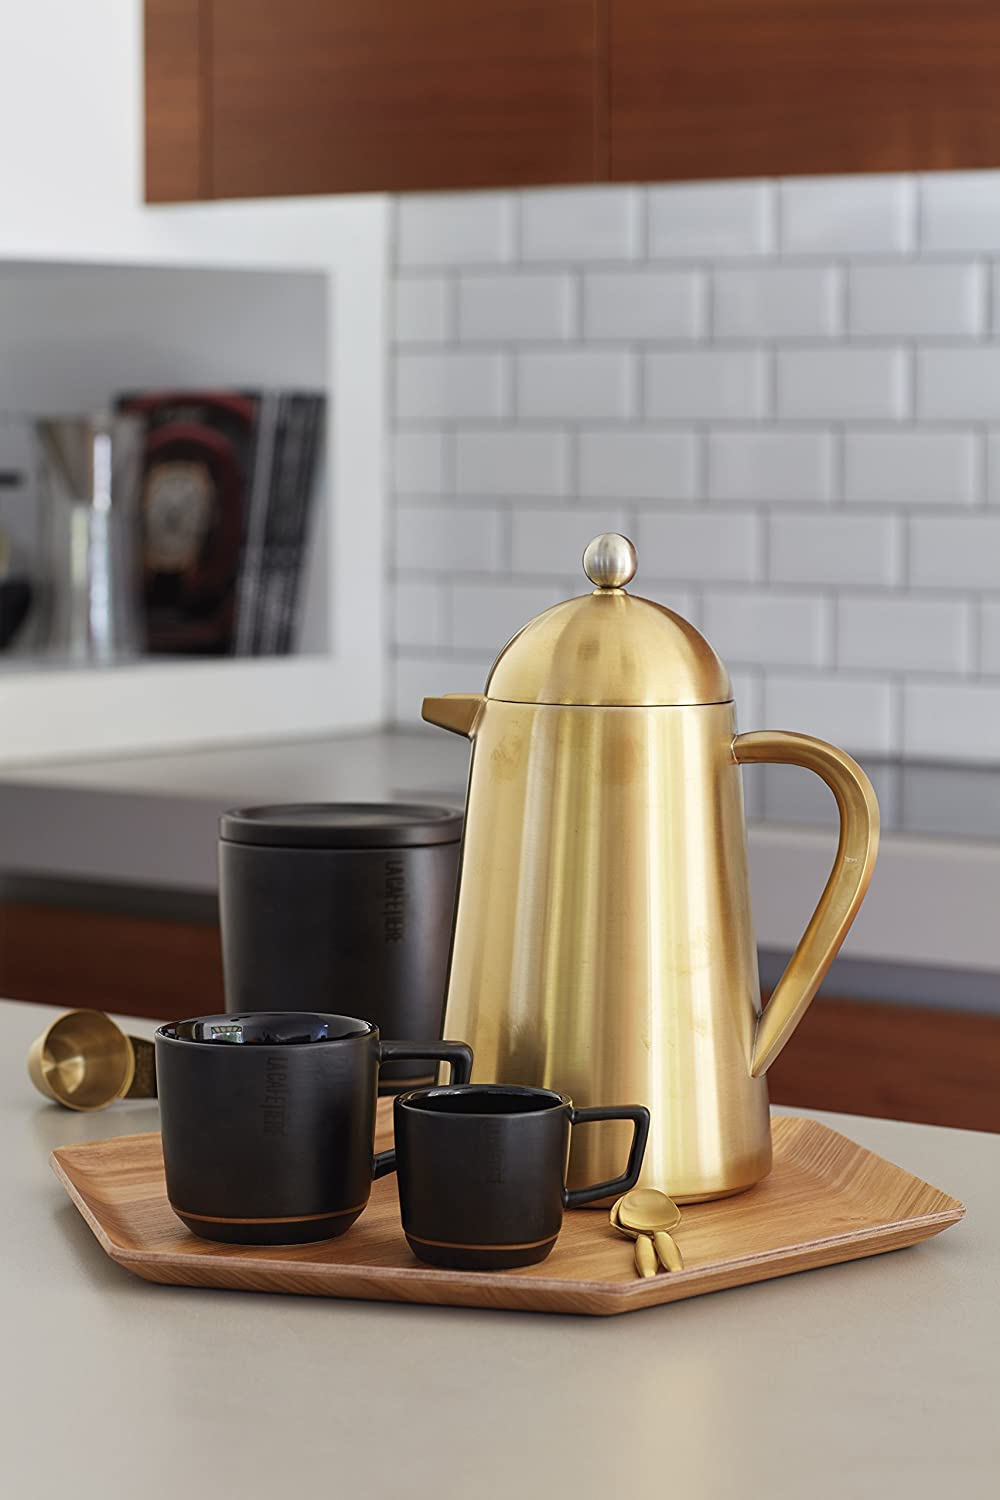 La Cafetiere Edited Thermique Double Walled 8 Cup Cafetiere - Herbert & Ward Ltd